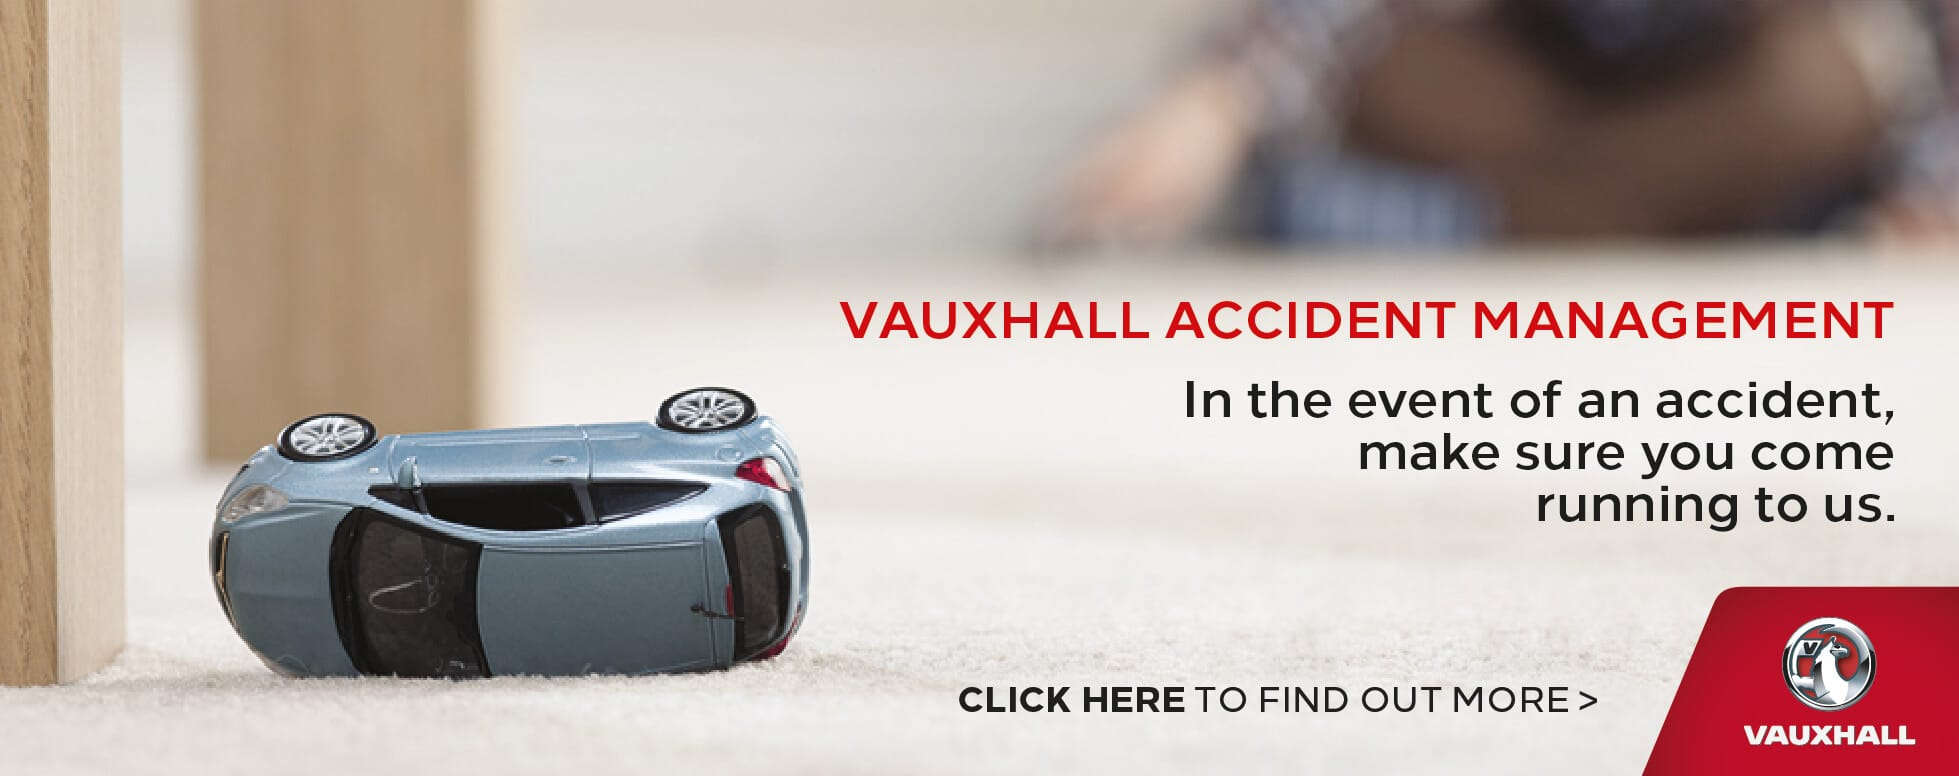 Vauxhall Accident Management BB